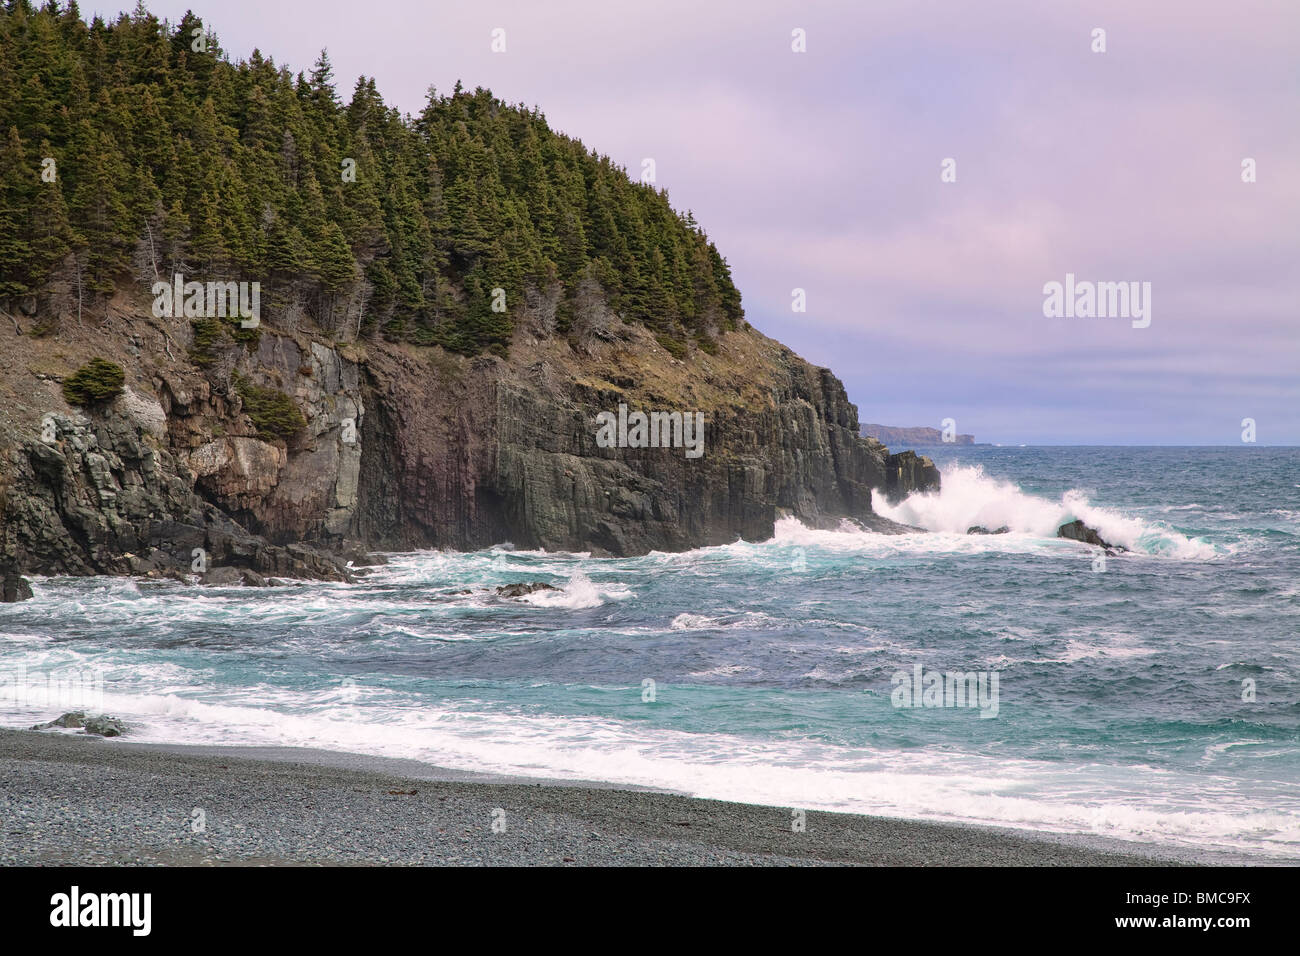 Surf pounding in on the stony beach of Middle Cove, Newfoundland, Canada.  North of St. John's. Stock Photo